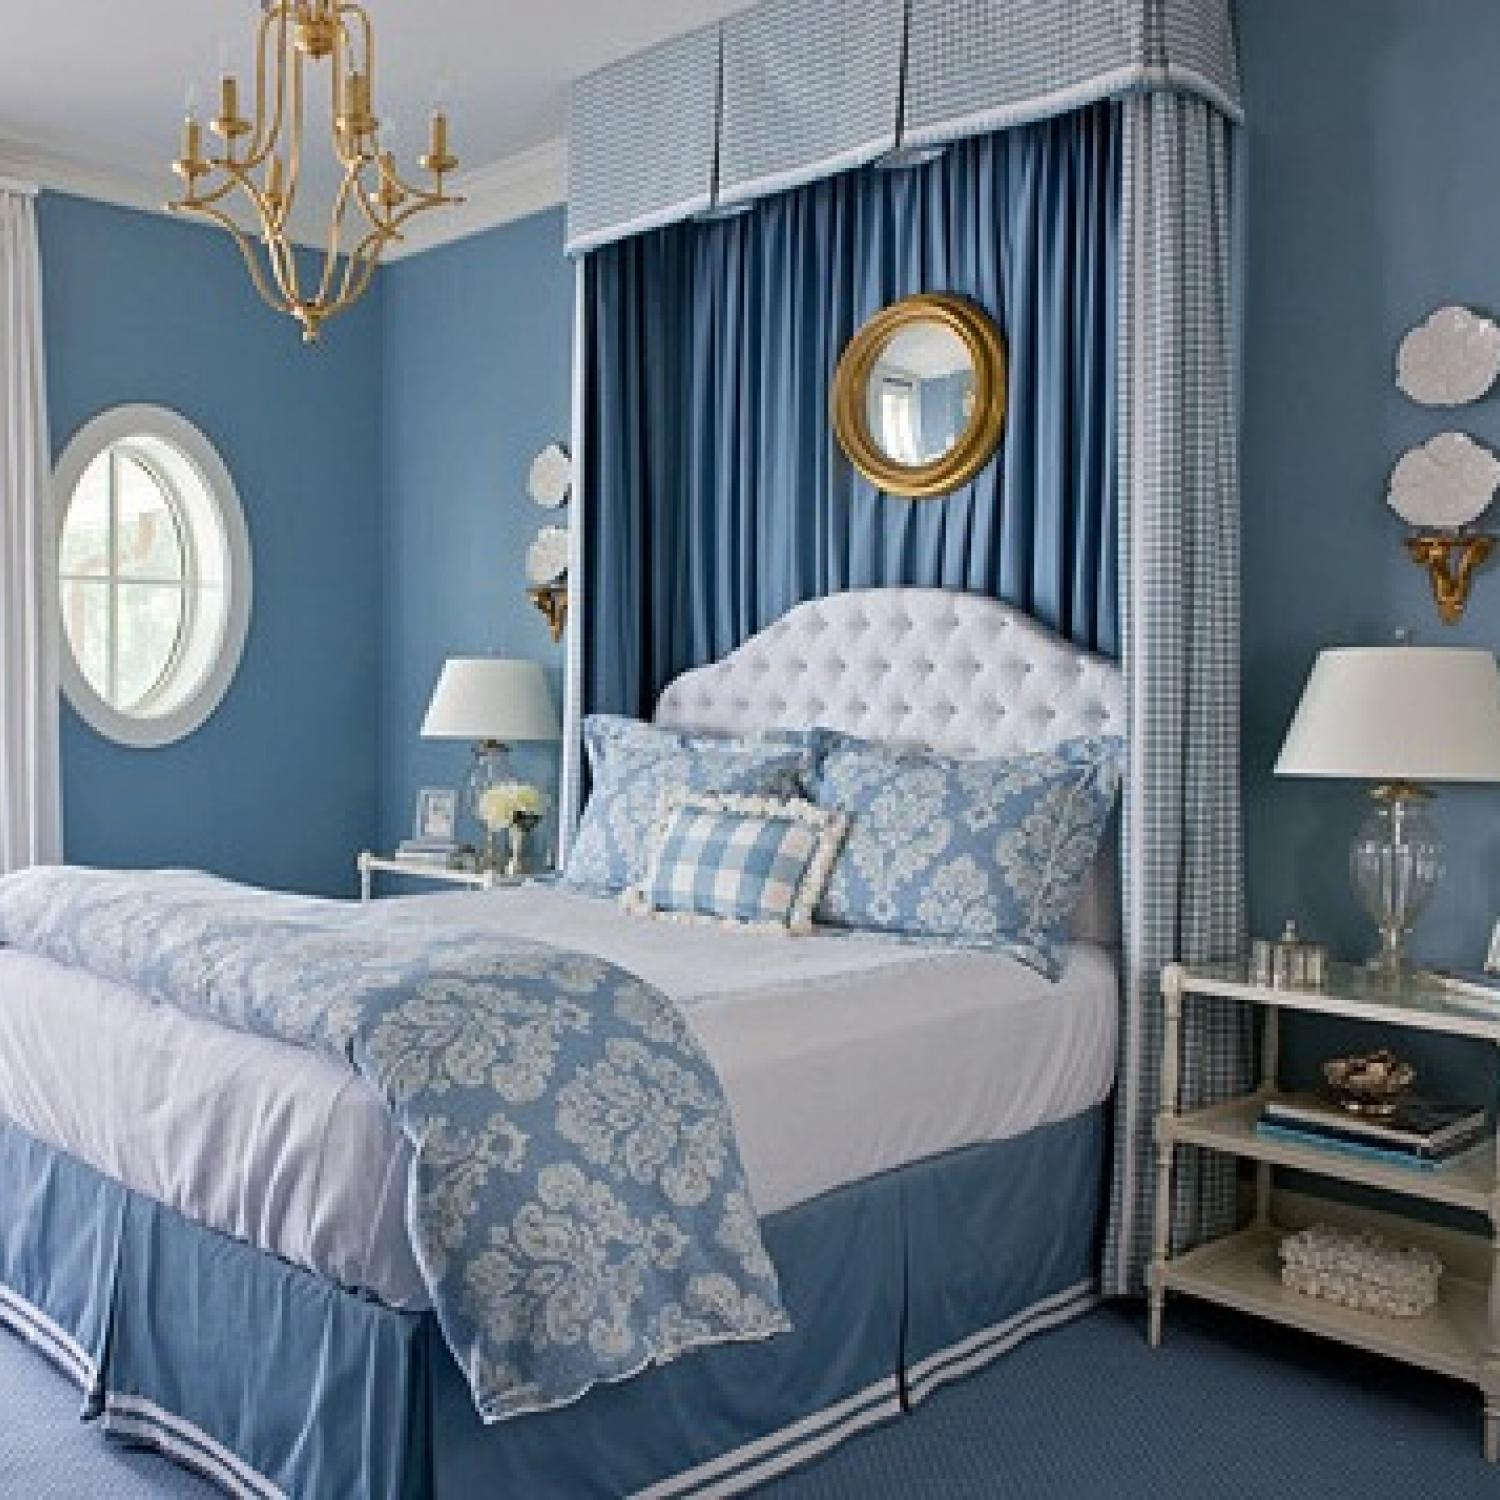 Bedroom Decorating Tips: Beautiful Blue Bedrooms